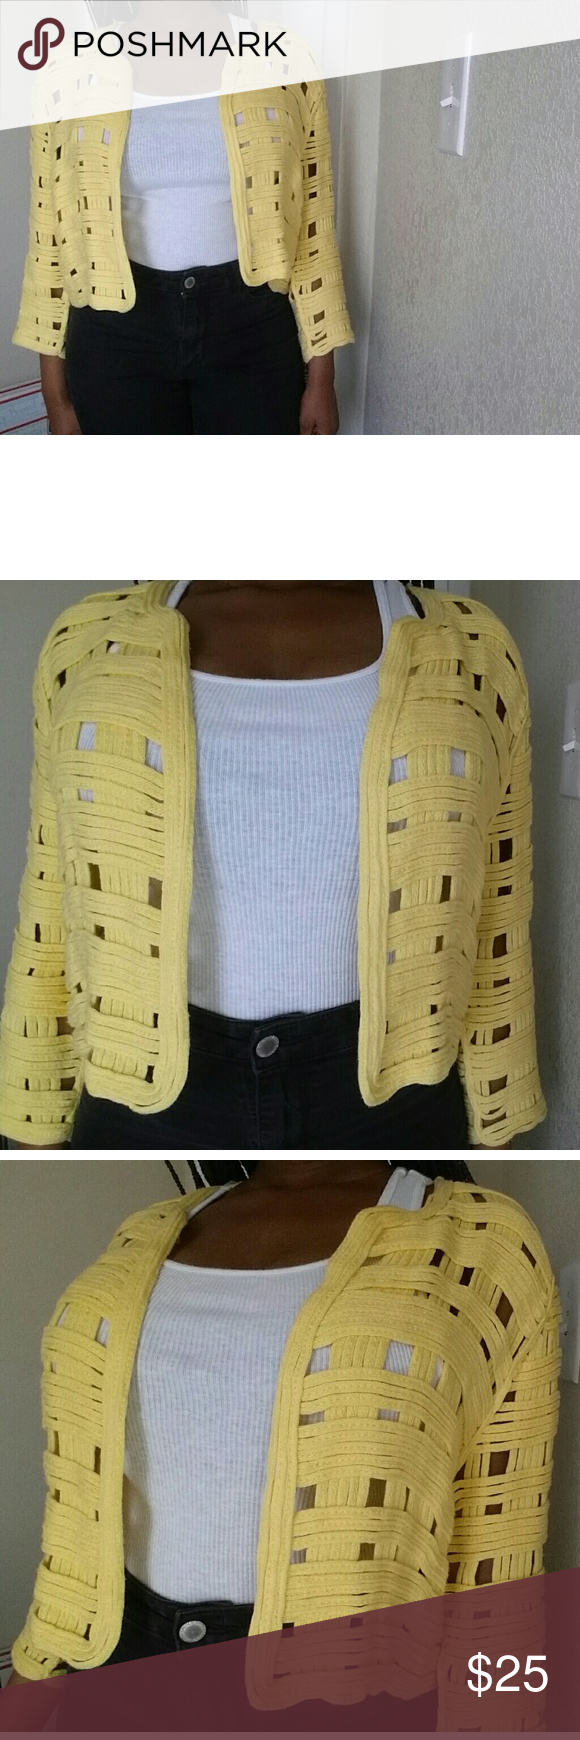 Chico's Yellow Cardigan This is a yellow cardigan from Chico's. This Cardigan is super chic! In great condition (like new) !  Feel free to make an offer. No trades. Please don't advertise your closet. Chico's Sweaters Cardigans